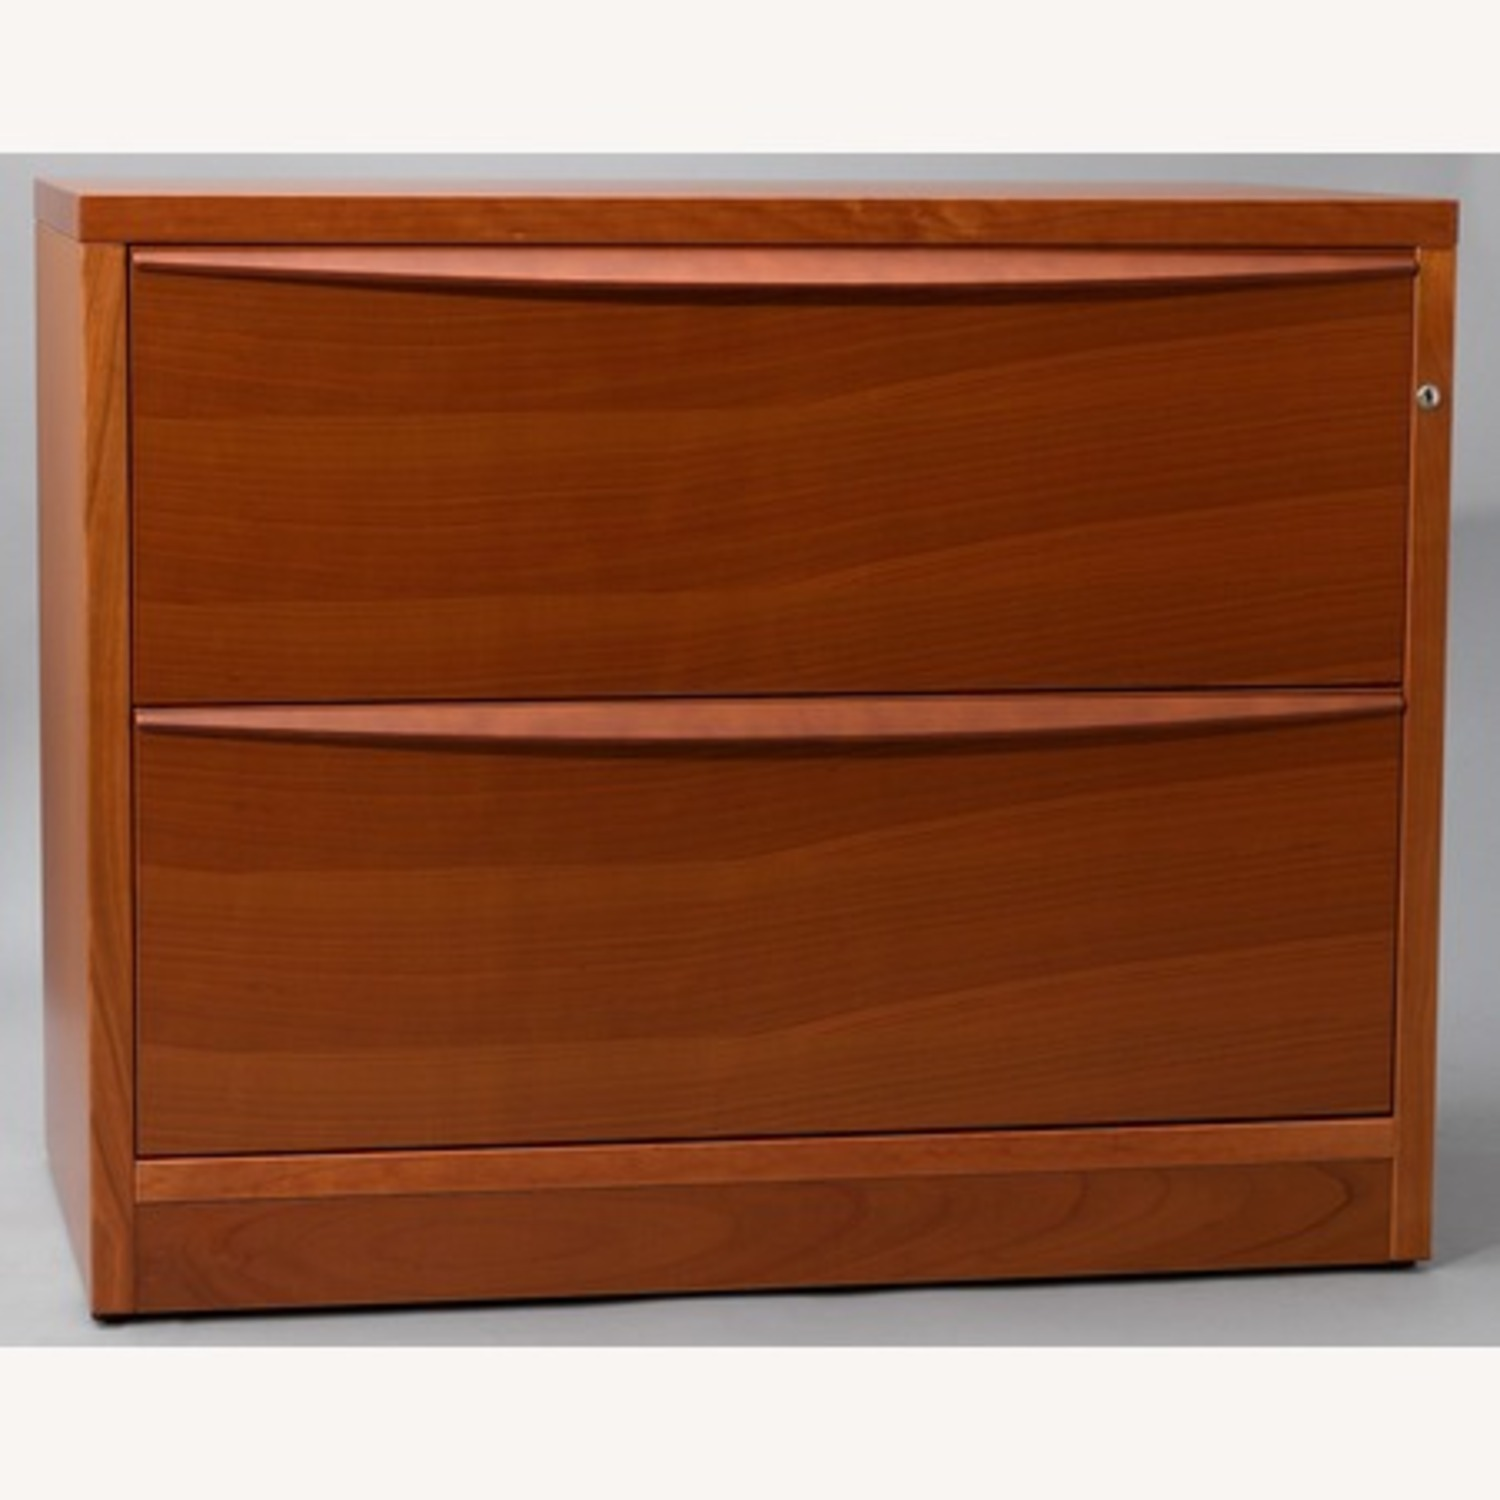 Jesper Office Cherry 2 Drawer Lateral Filing Cabinet - image-3